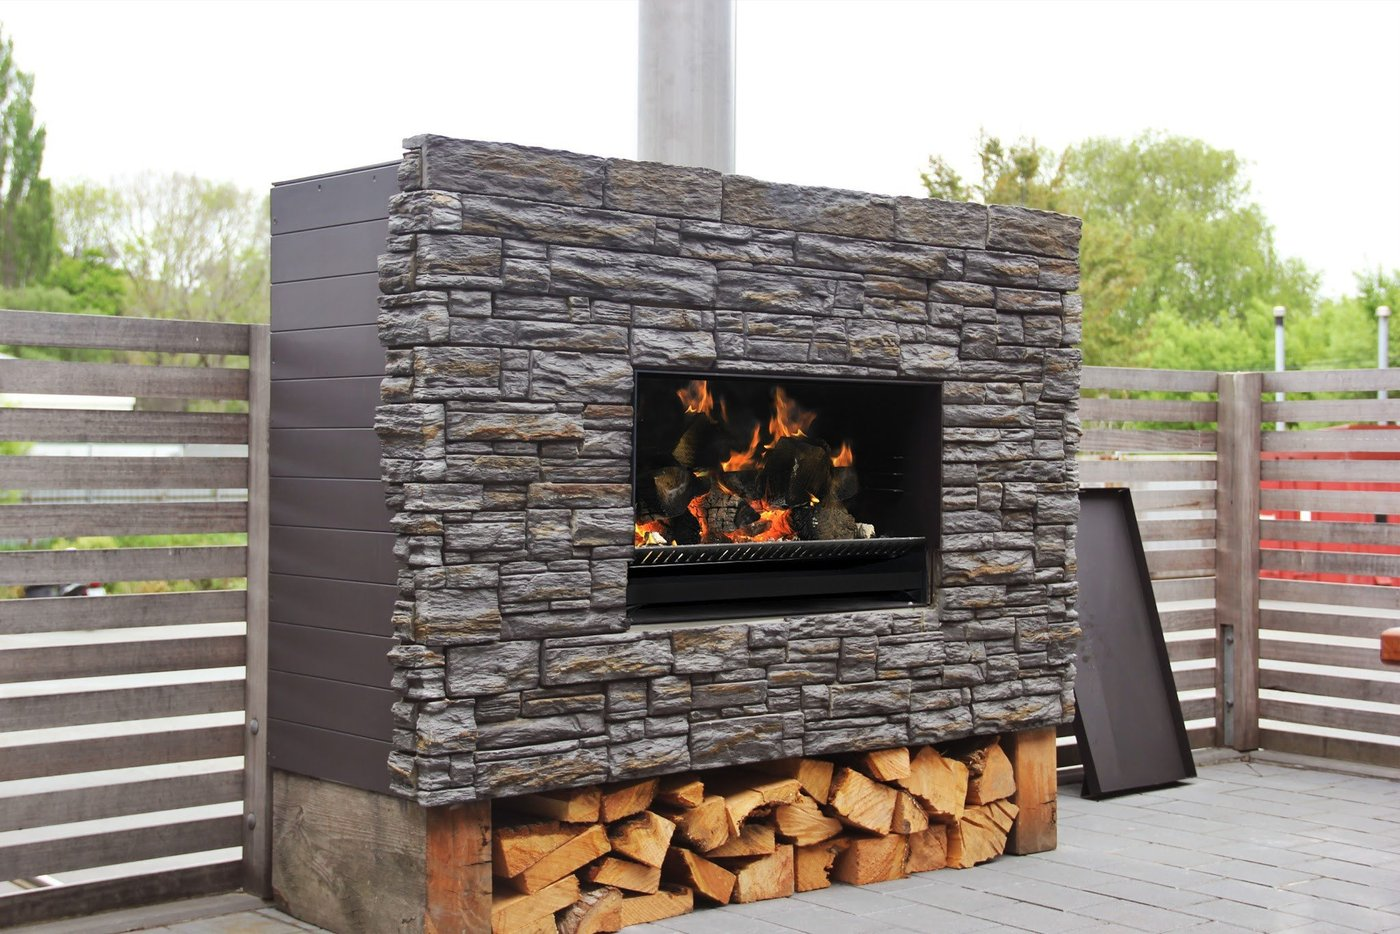 Escea Ew5000 Outdoor Wood Fire With Cooking Grate Brisbane